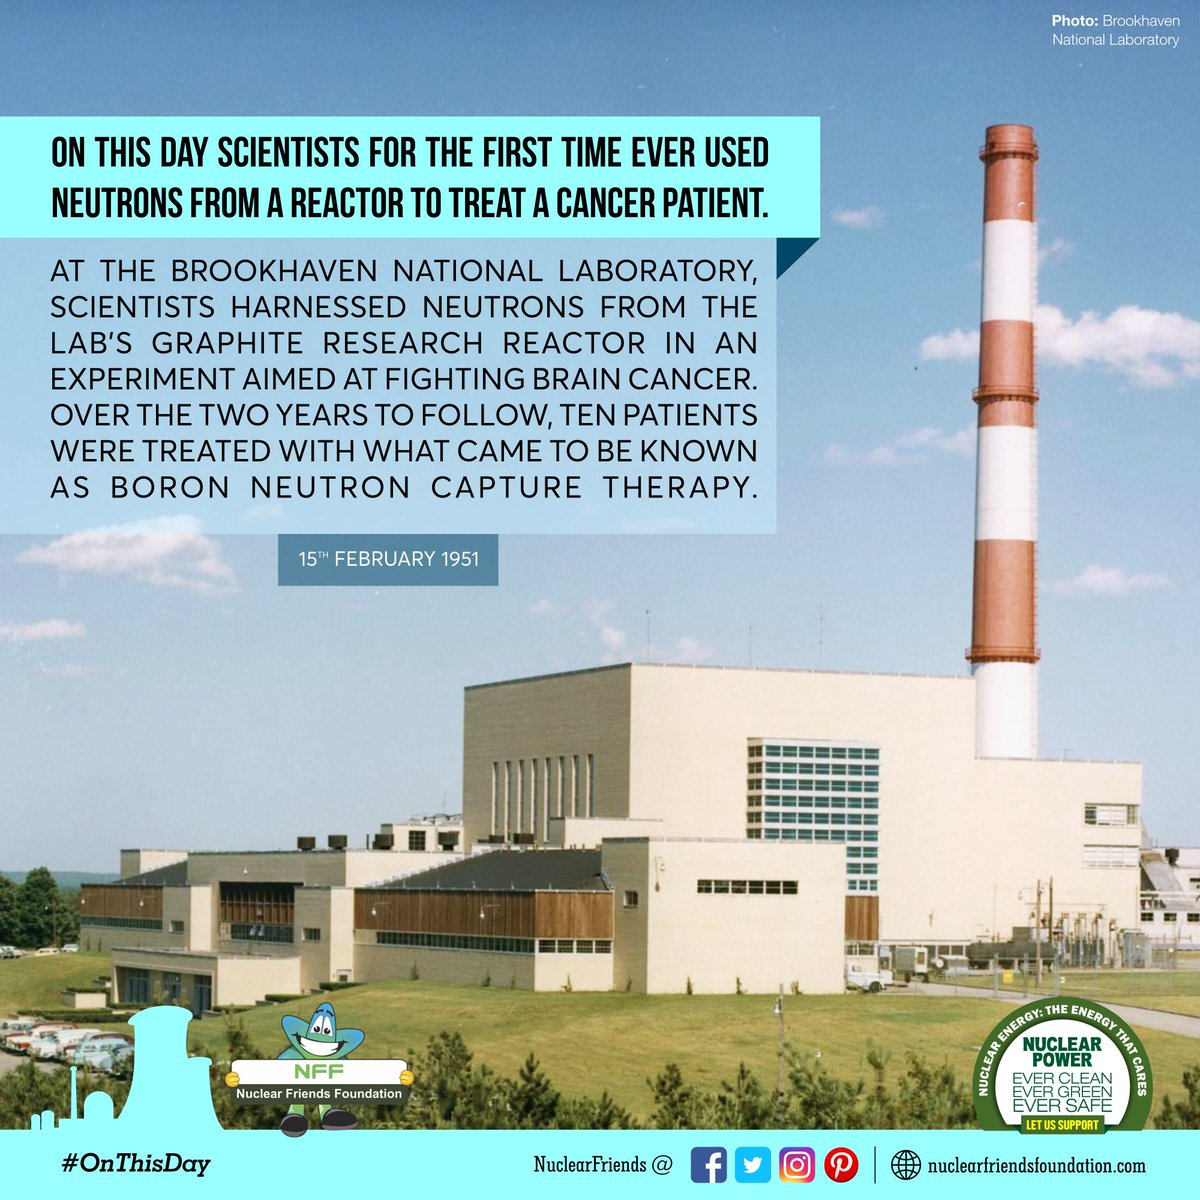 #OnThisDay On this day scientists for the first time ever used neutrons from a reactor to treat a cancer patient  Reach us @ http://nuclearfriendsfoundation.com  #NuclearPower #NuclearEnergy #Evergreen  #NuclearFacts  #SaturdayMotivation @iaeaorg @WorldNuclearUni @W_Nuclear_News @WorldNuclear